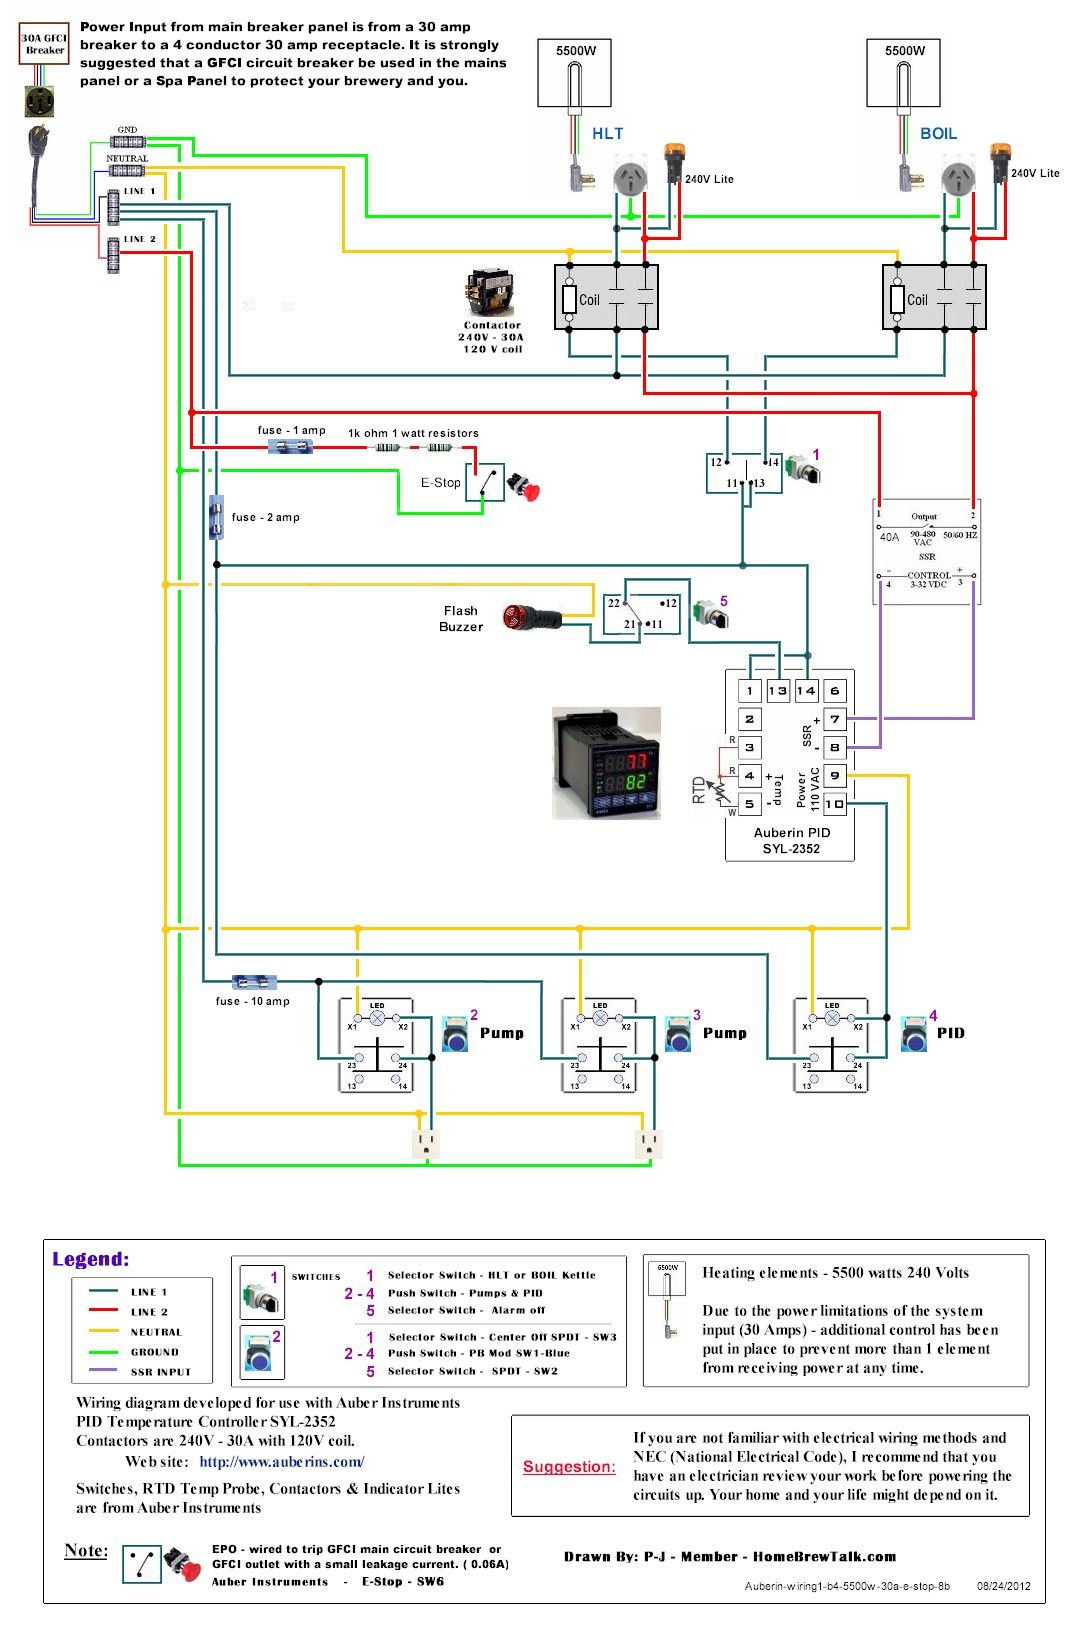 220v 30a wiring diagram help page 2 home brew forums *brewery Home Brewery Process 220v 30a wiring diagram help page 2 home brew forums